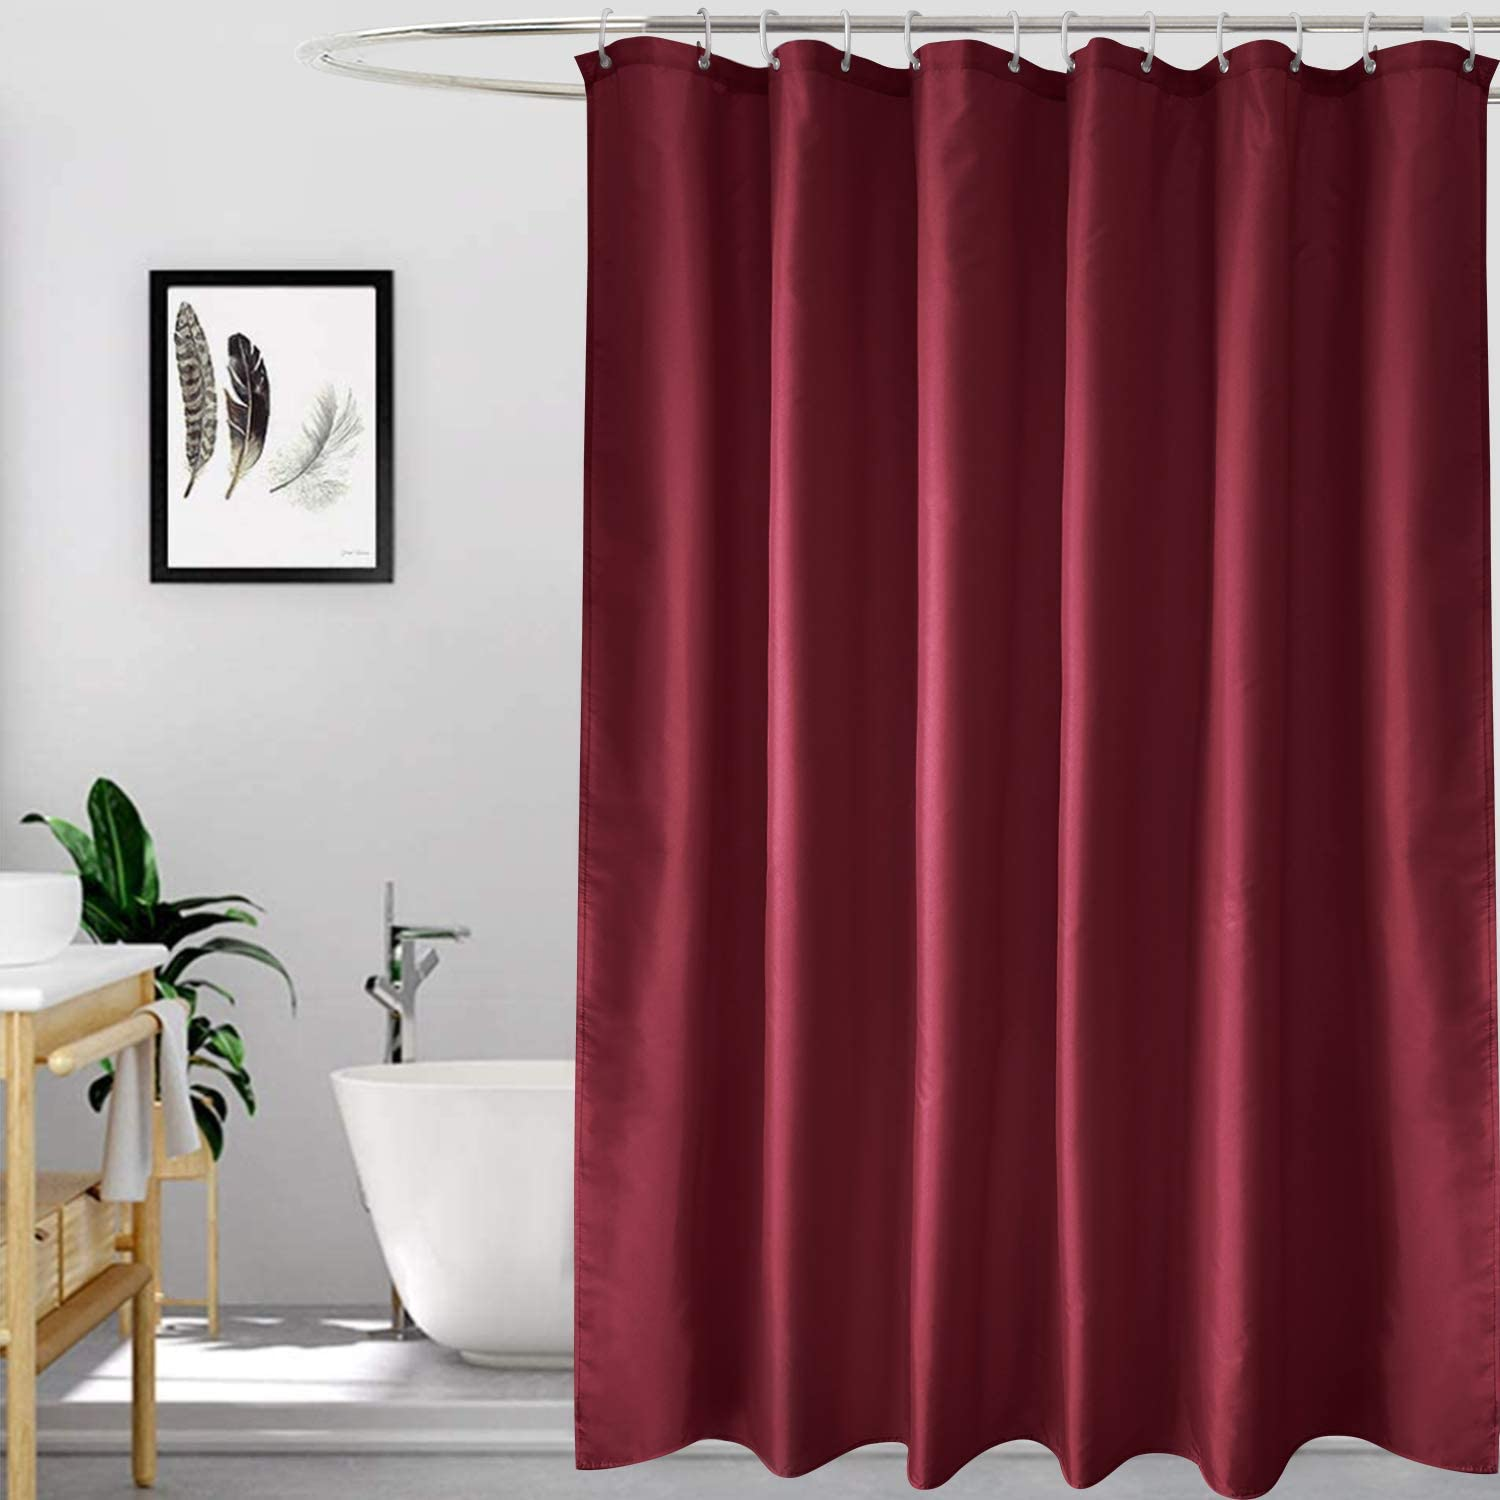 Hotel Durable for Bathroom Bathtub Showers Wine Red Guest Room EurCross Shower Curtain Liner 72 x72 Inch Solid Polyester Fabric Water Resistant Weighted Bottom Hem Set with Hooks Easy Clean for Home